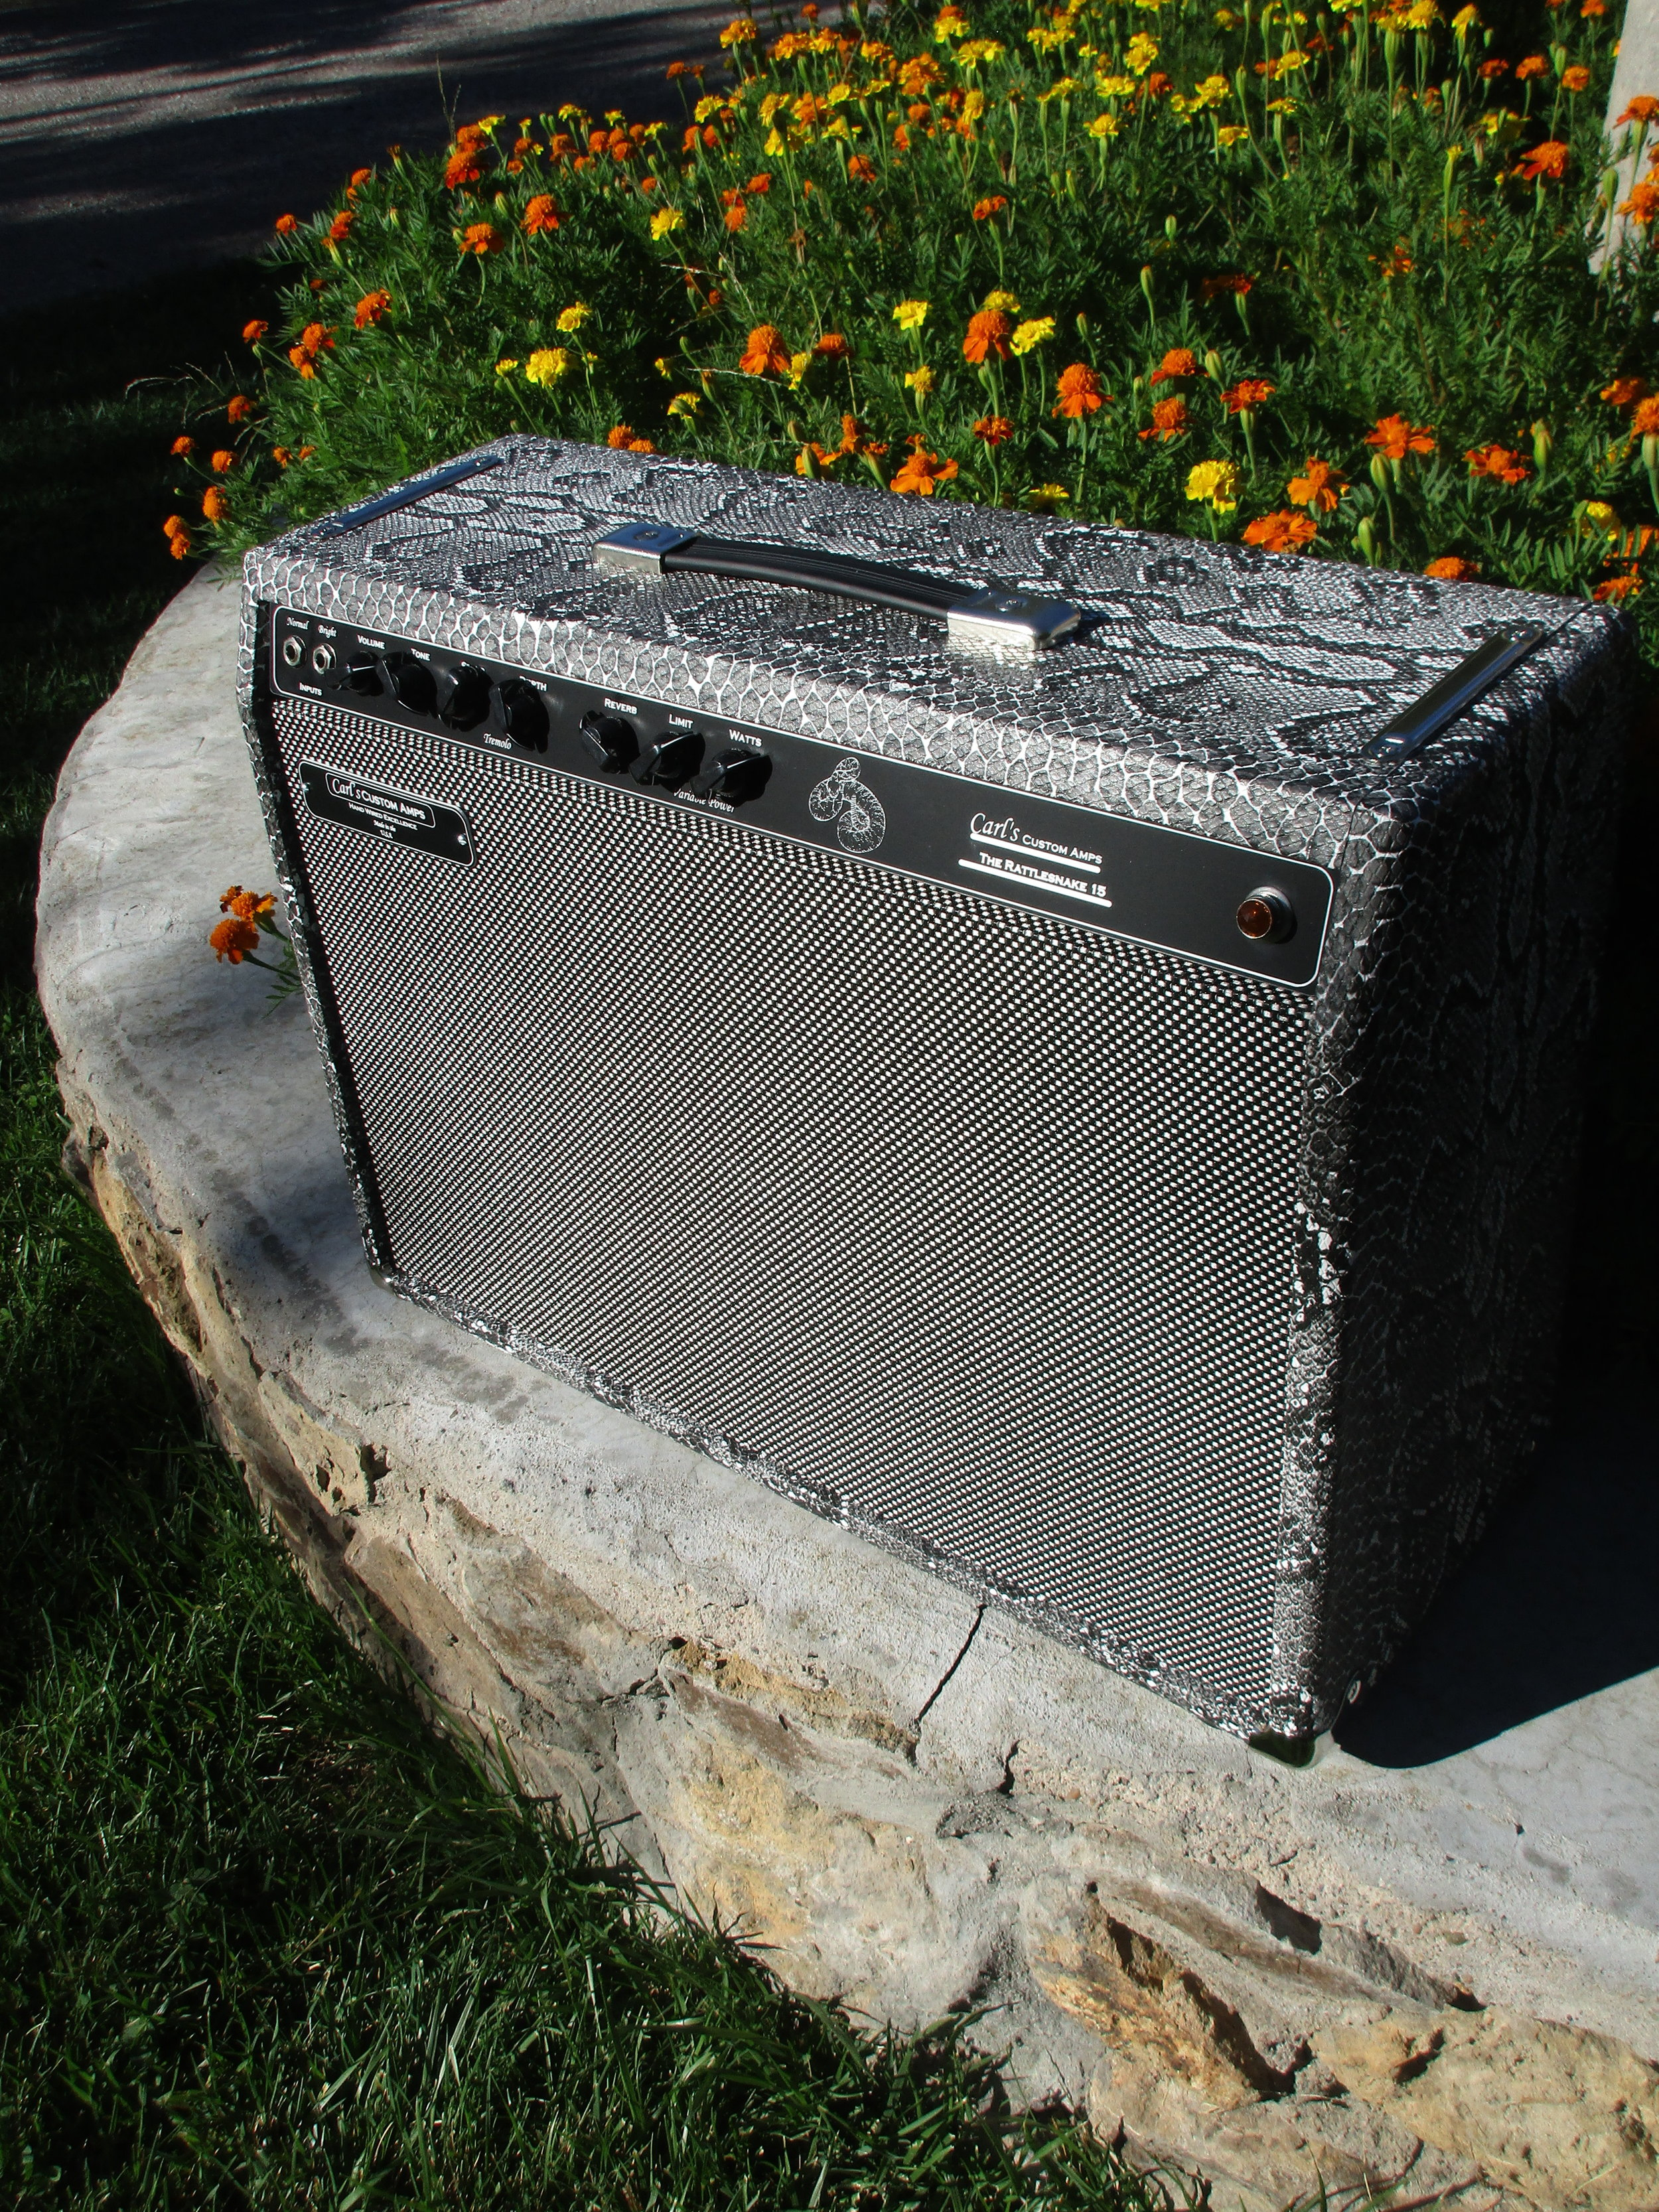 """This custom build is Supro type circuit but fitted with Trem, Reverb, and Variable power! It versatile and great sounding machine! The customer wrote:  """"Loving this amp my friend…It's just perfect!  I can now die a happy bottleneck player!  I can't see myself ever needing another one in this life!  Keep up the good work mate…  we'll chat later about the great harp amp you're gonna build for me!  All the best matey!  Kind Regards""""  Mo—-Australia"""